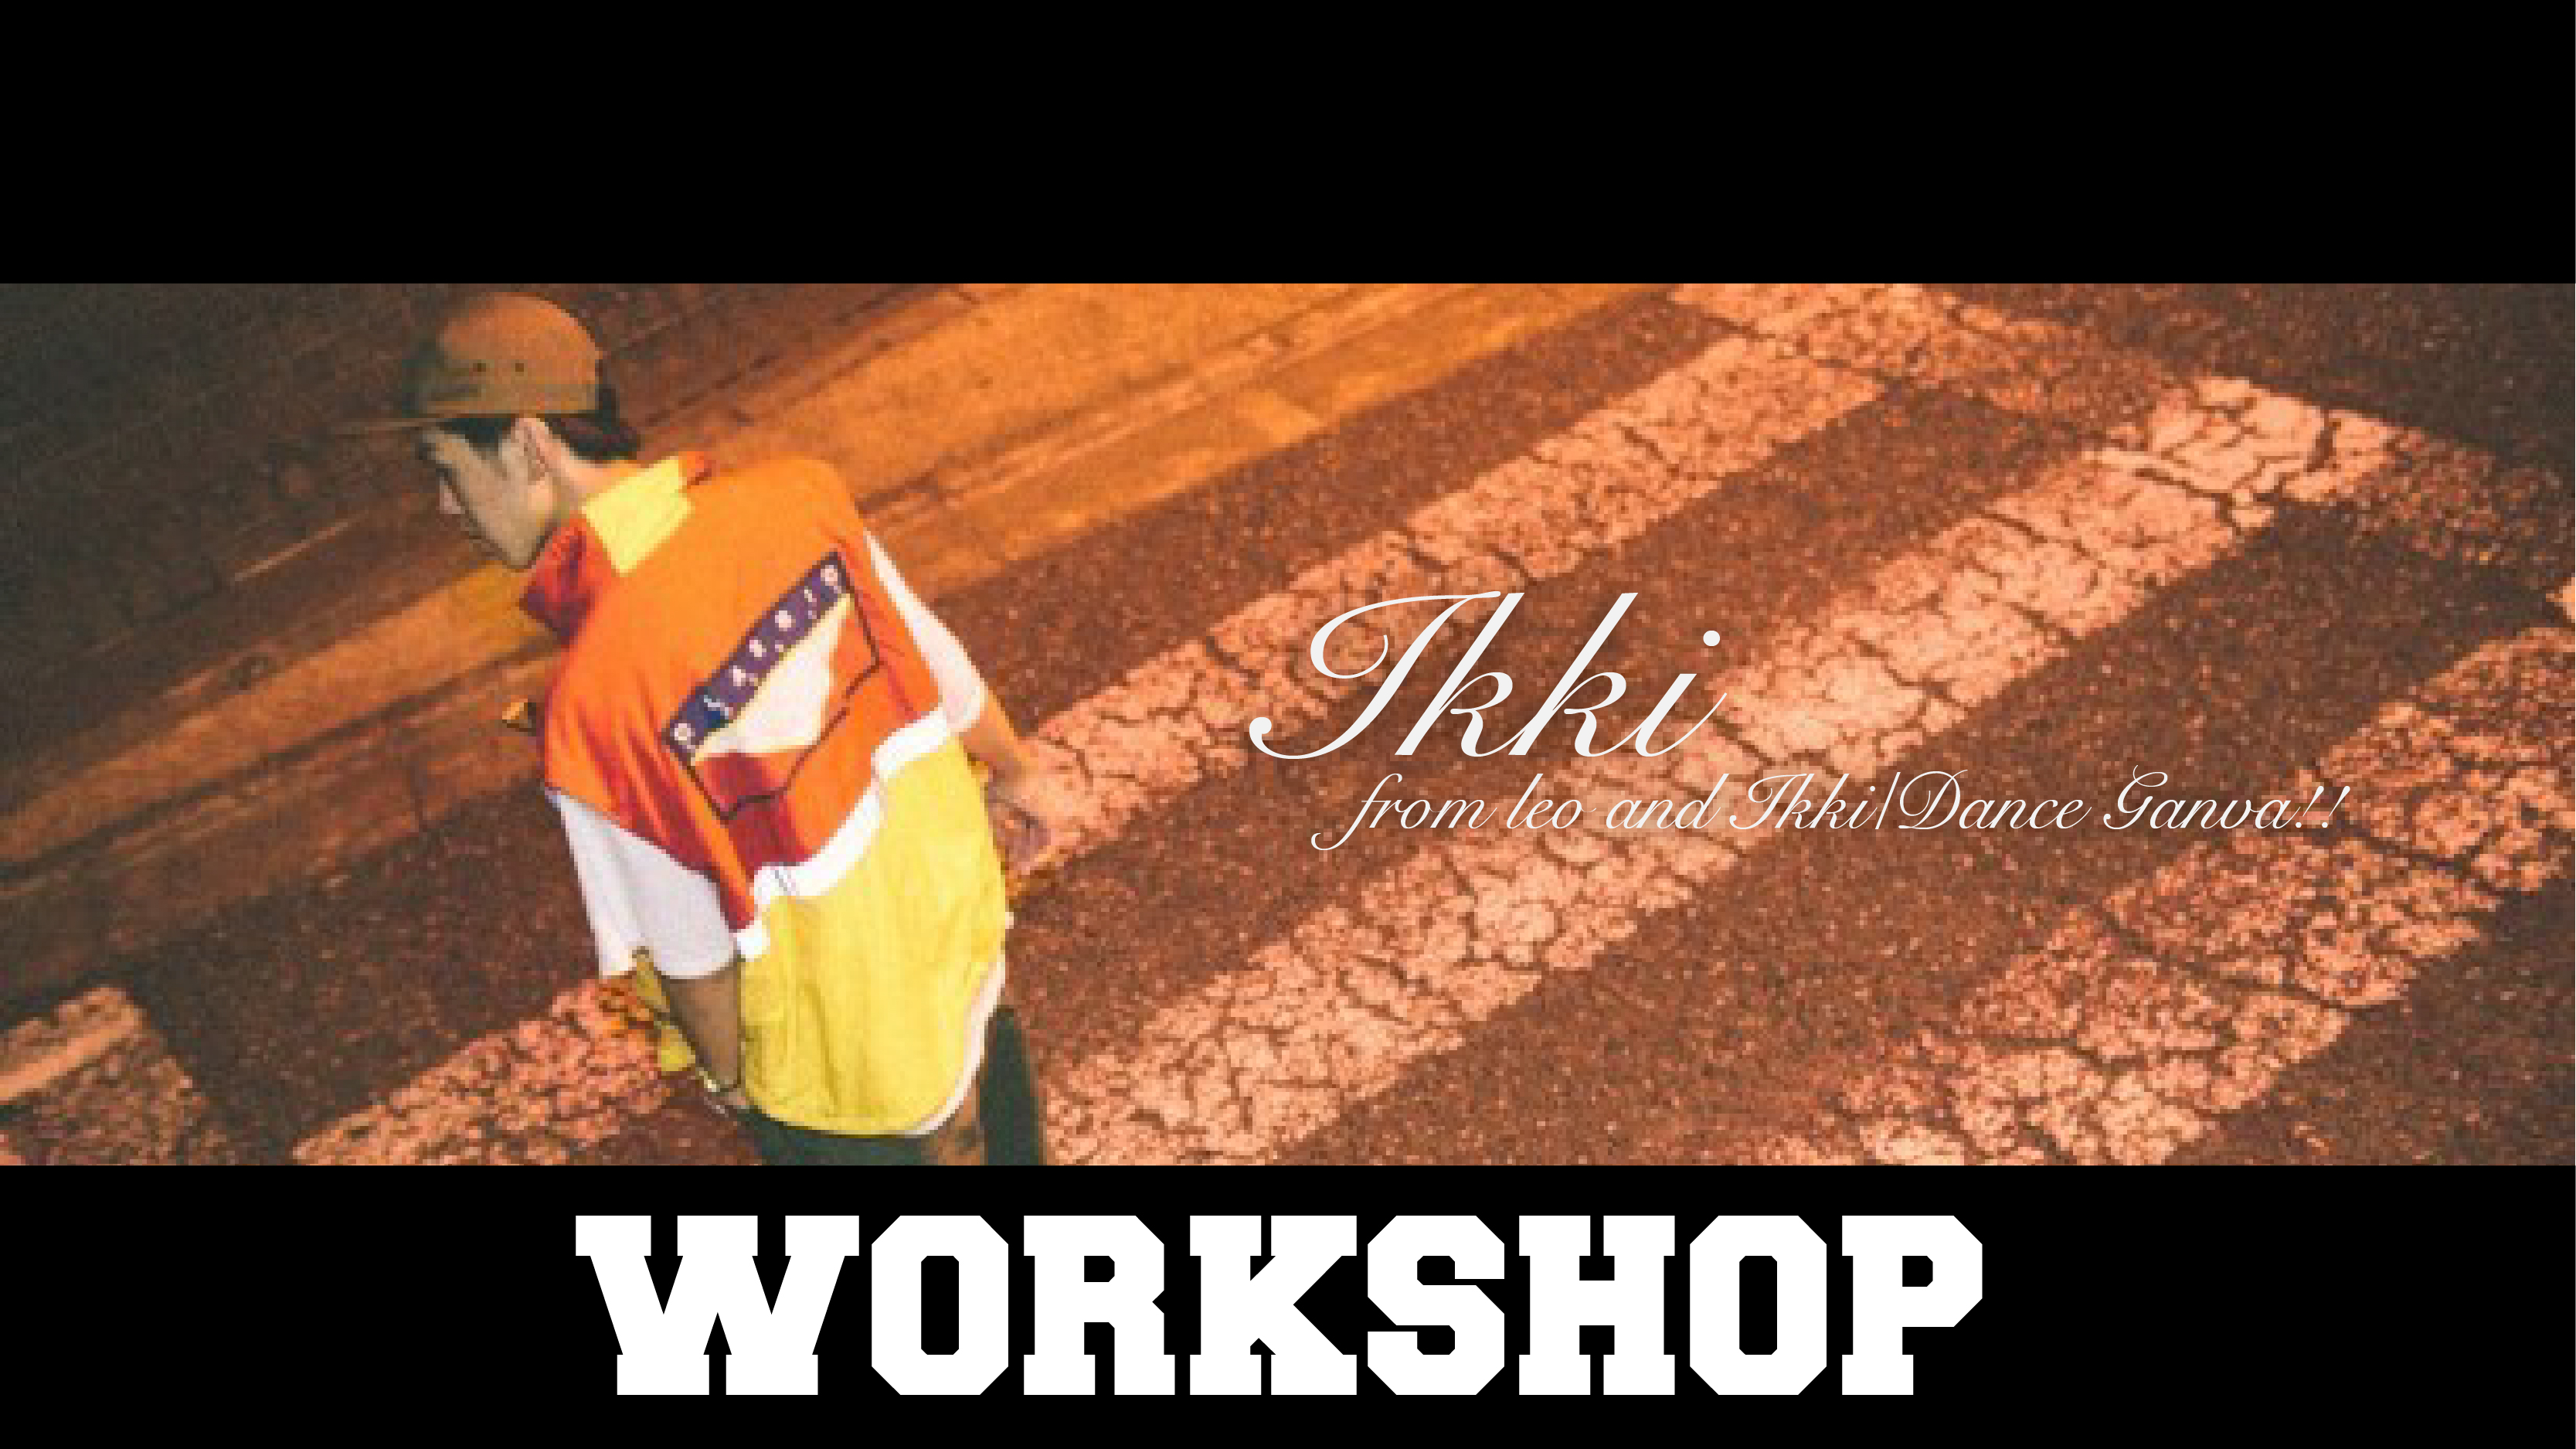 NEW OLD WORK Presents IKKI WORKSHOP